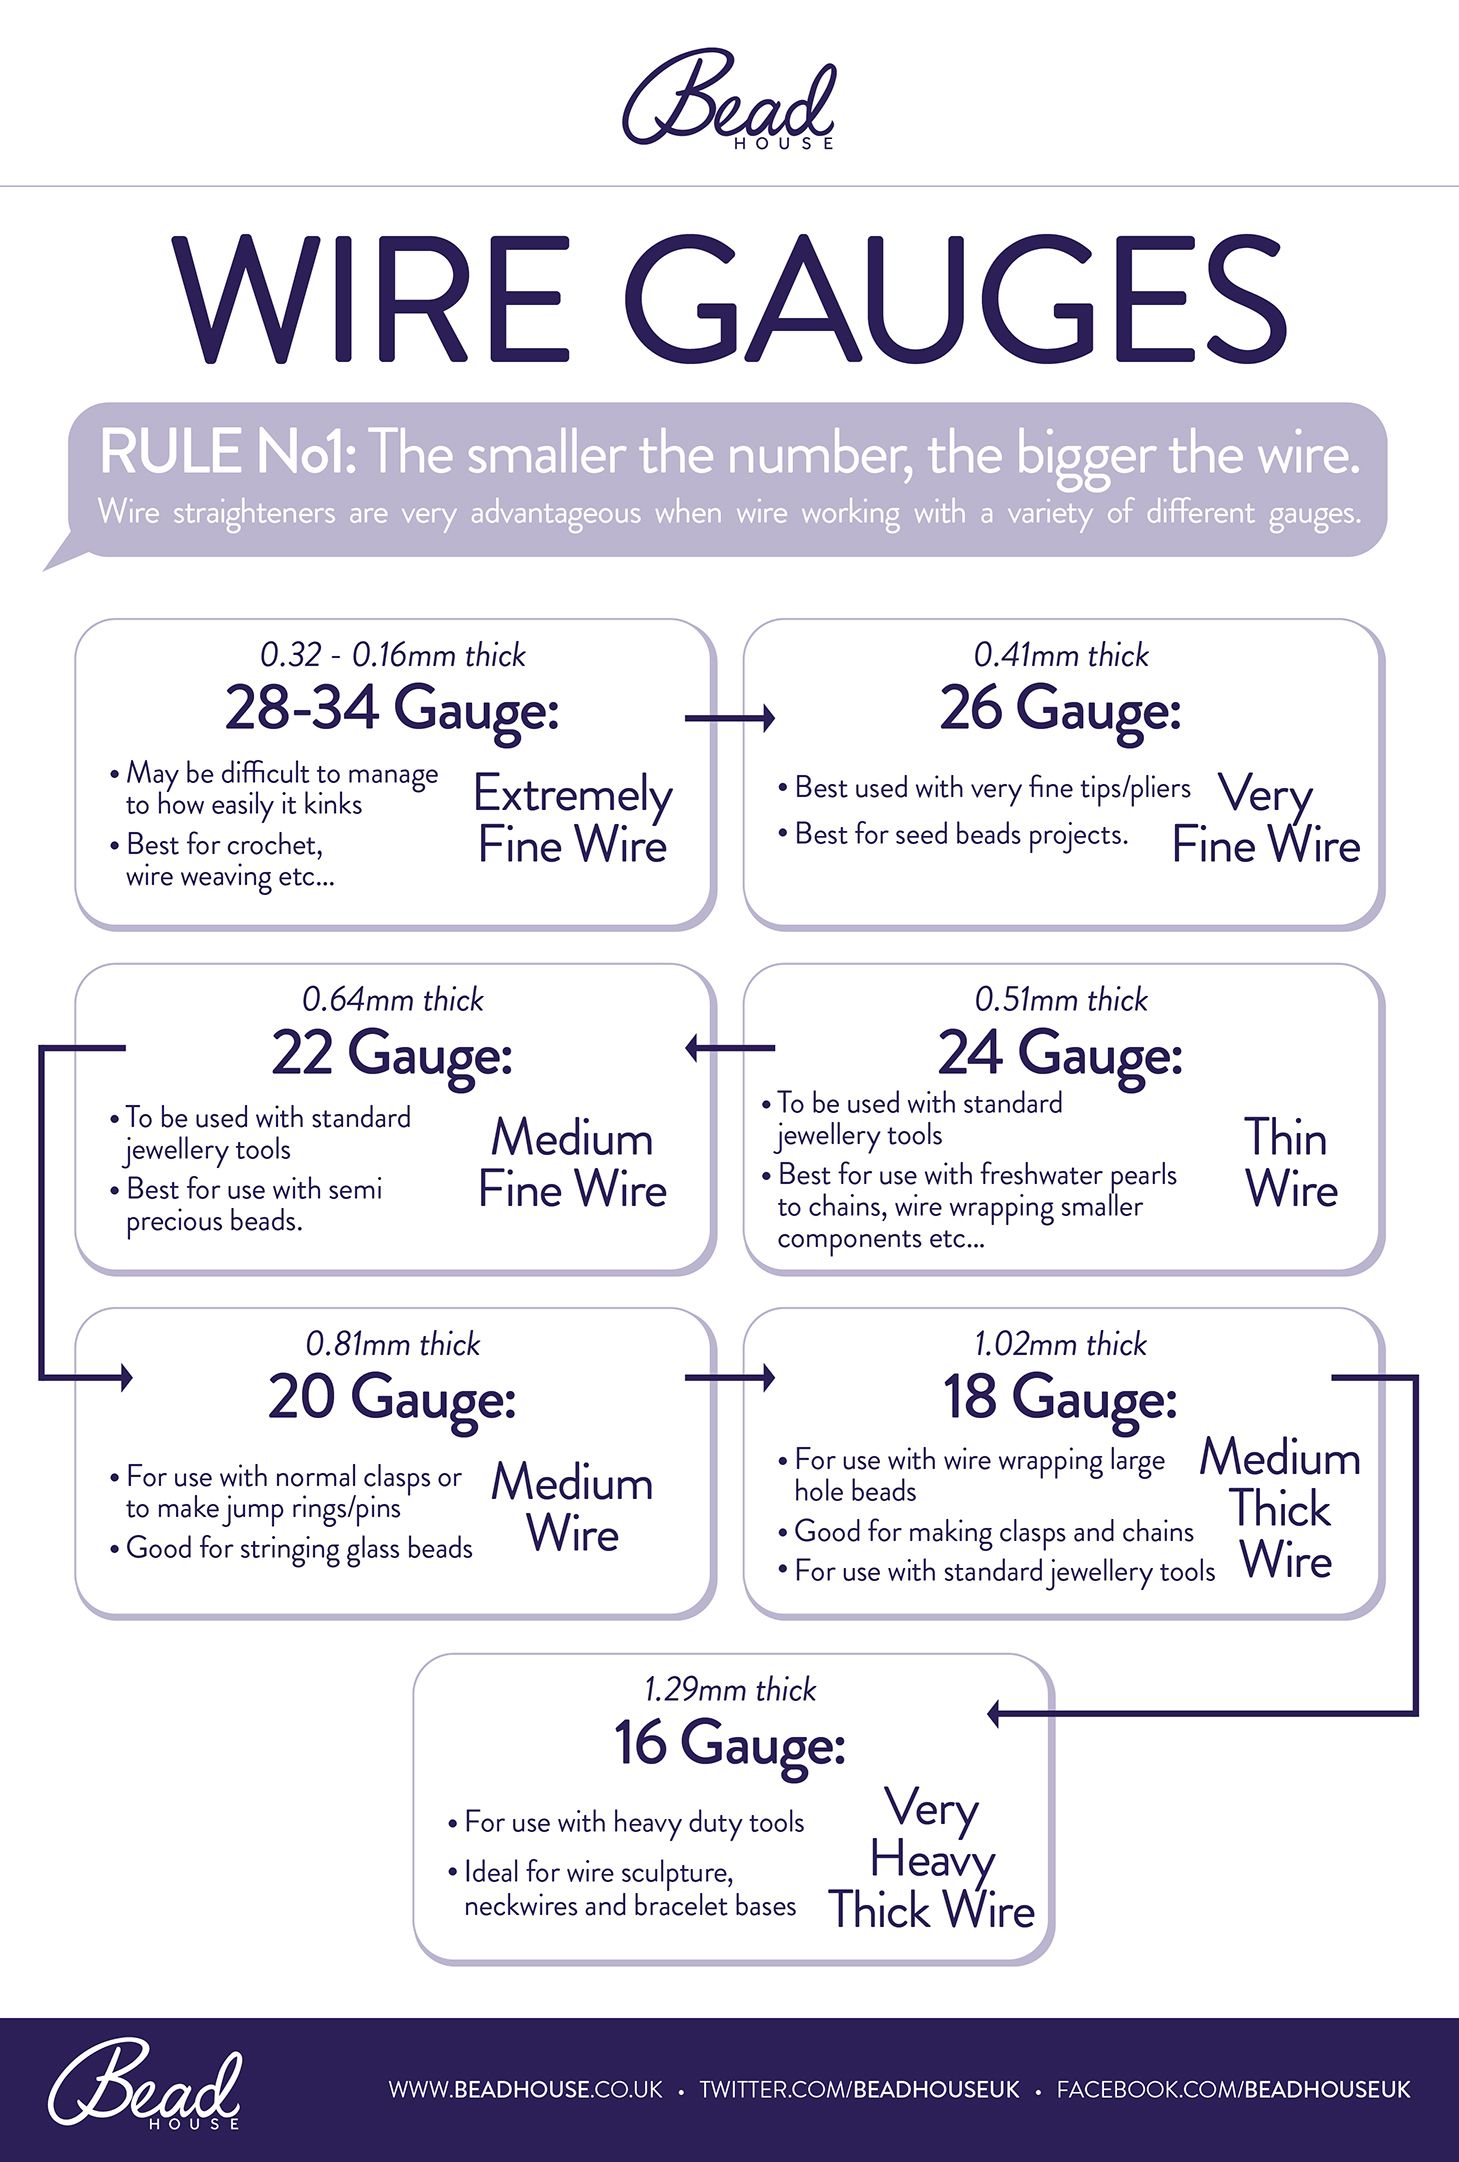 Guide to wire gauges infographic by bead house jewelry pinterest guide to wire gauges infographic by bead house keyboard keysfo Image collections